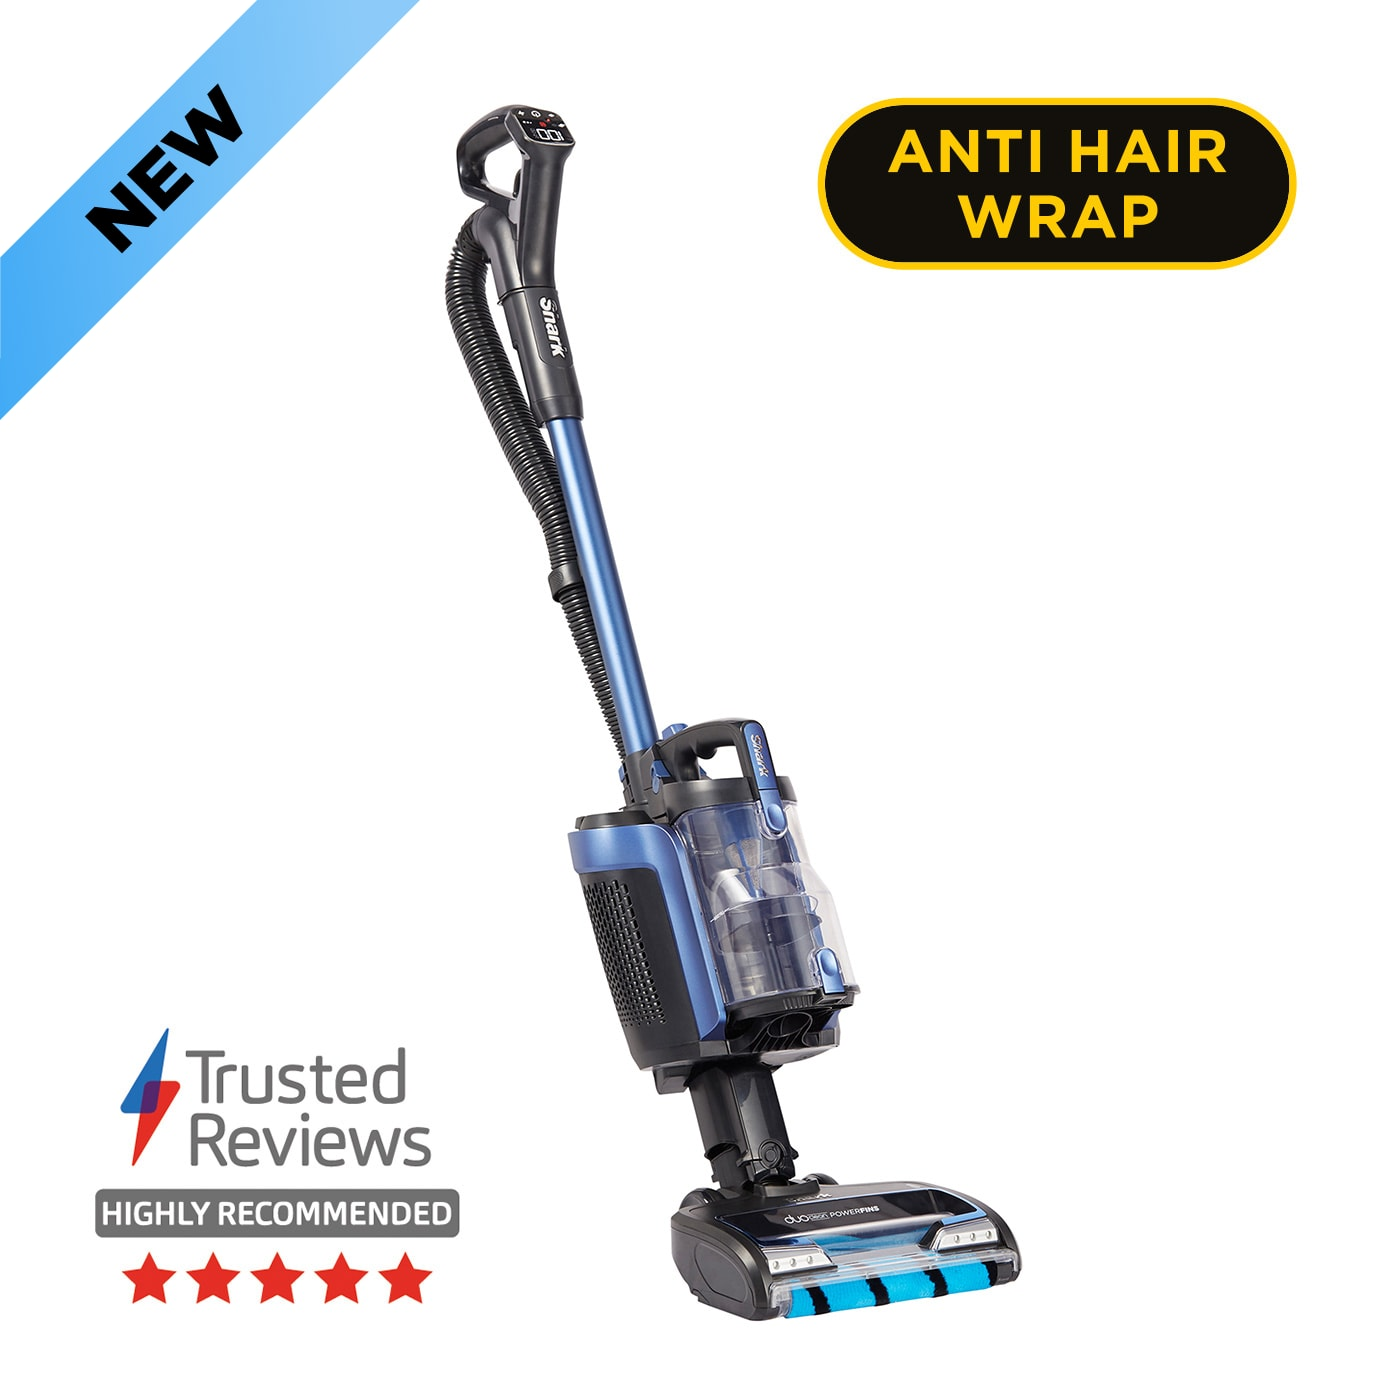 Shark Anti Hair Wrap Cordless Upright Vacuum Cleaner with PowerFins, Powered Lift-Away & TruePet ICZ300UKT product photo